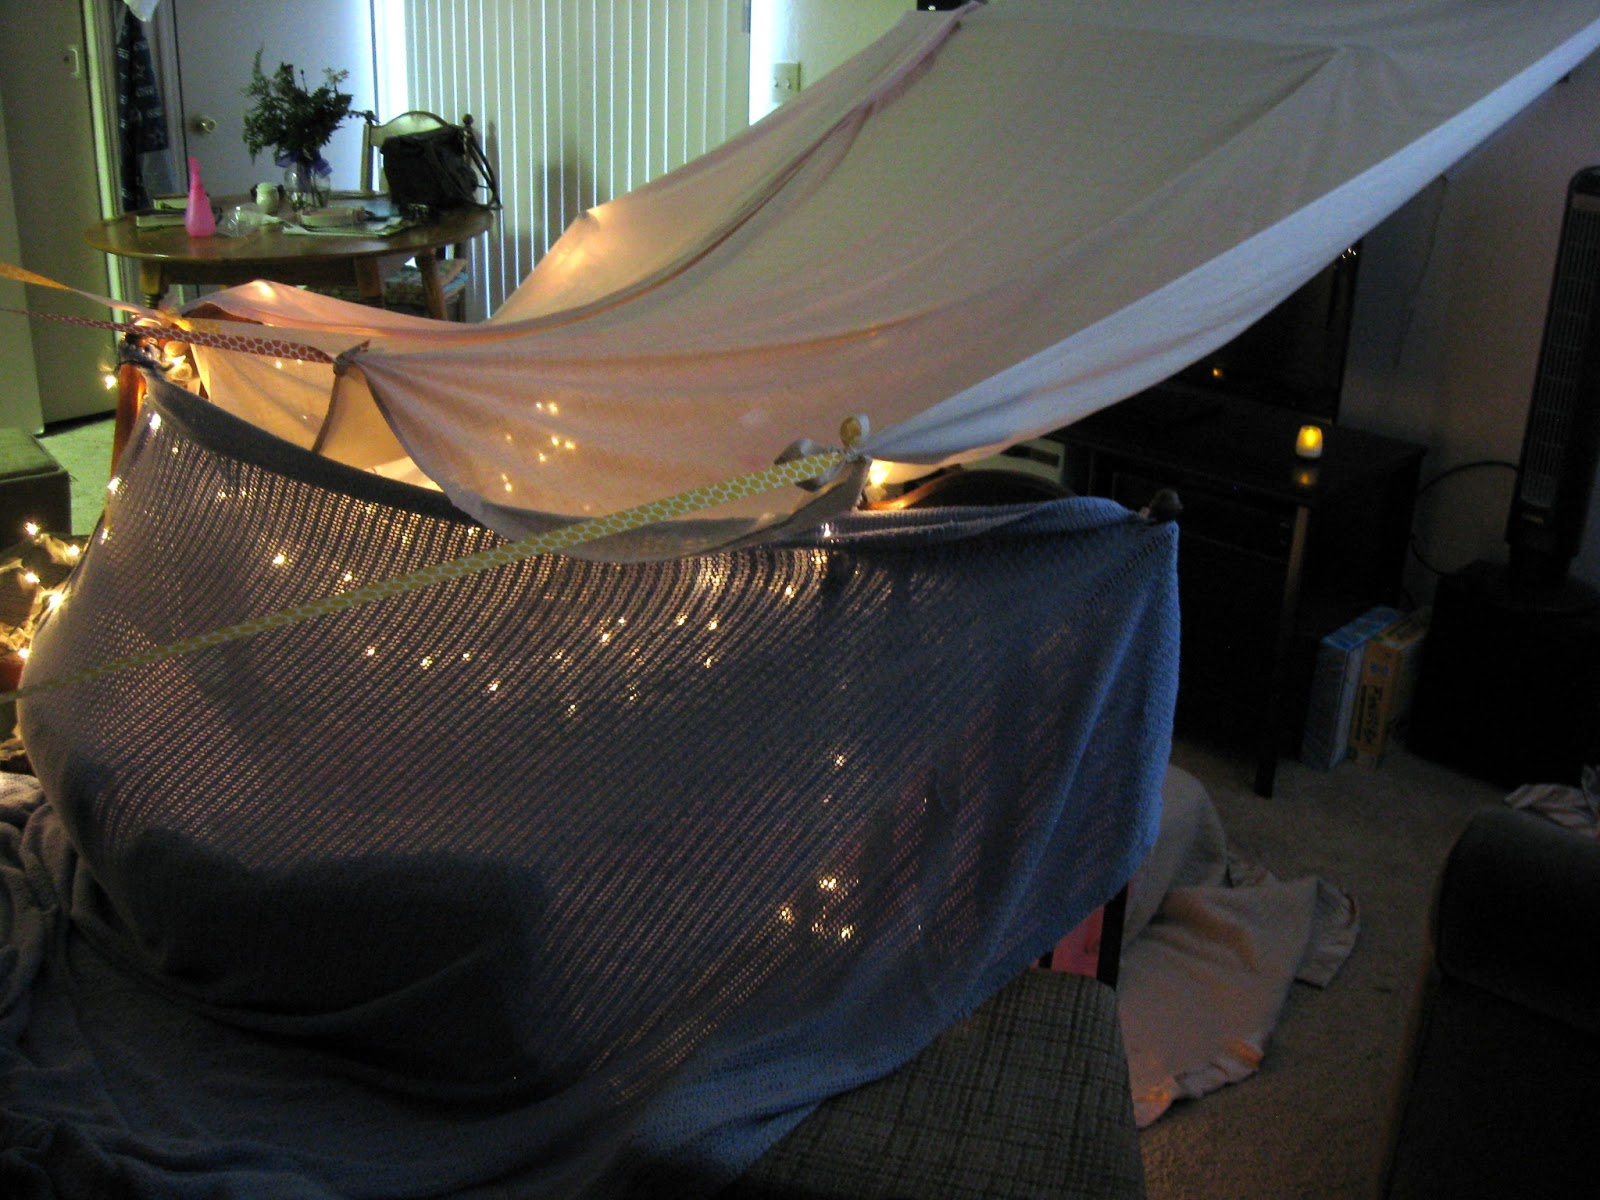 Date Night Idea Grown Up Tent & Passion Pink u0026 Pearls: Date Night Idea: Grown Up Tent